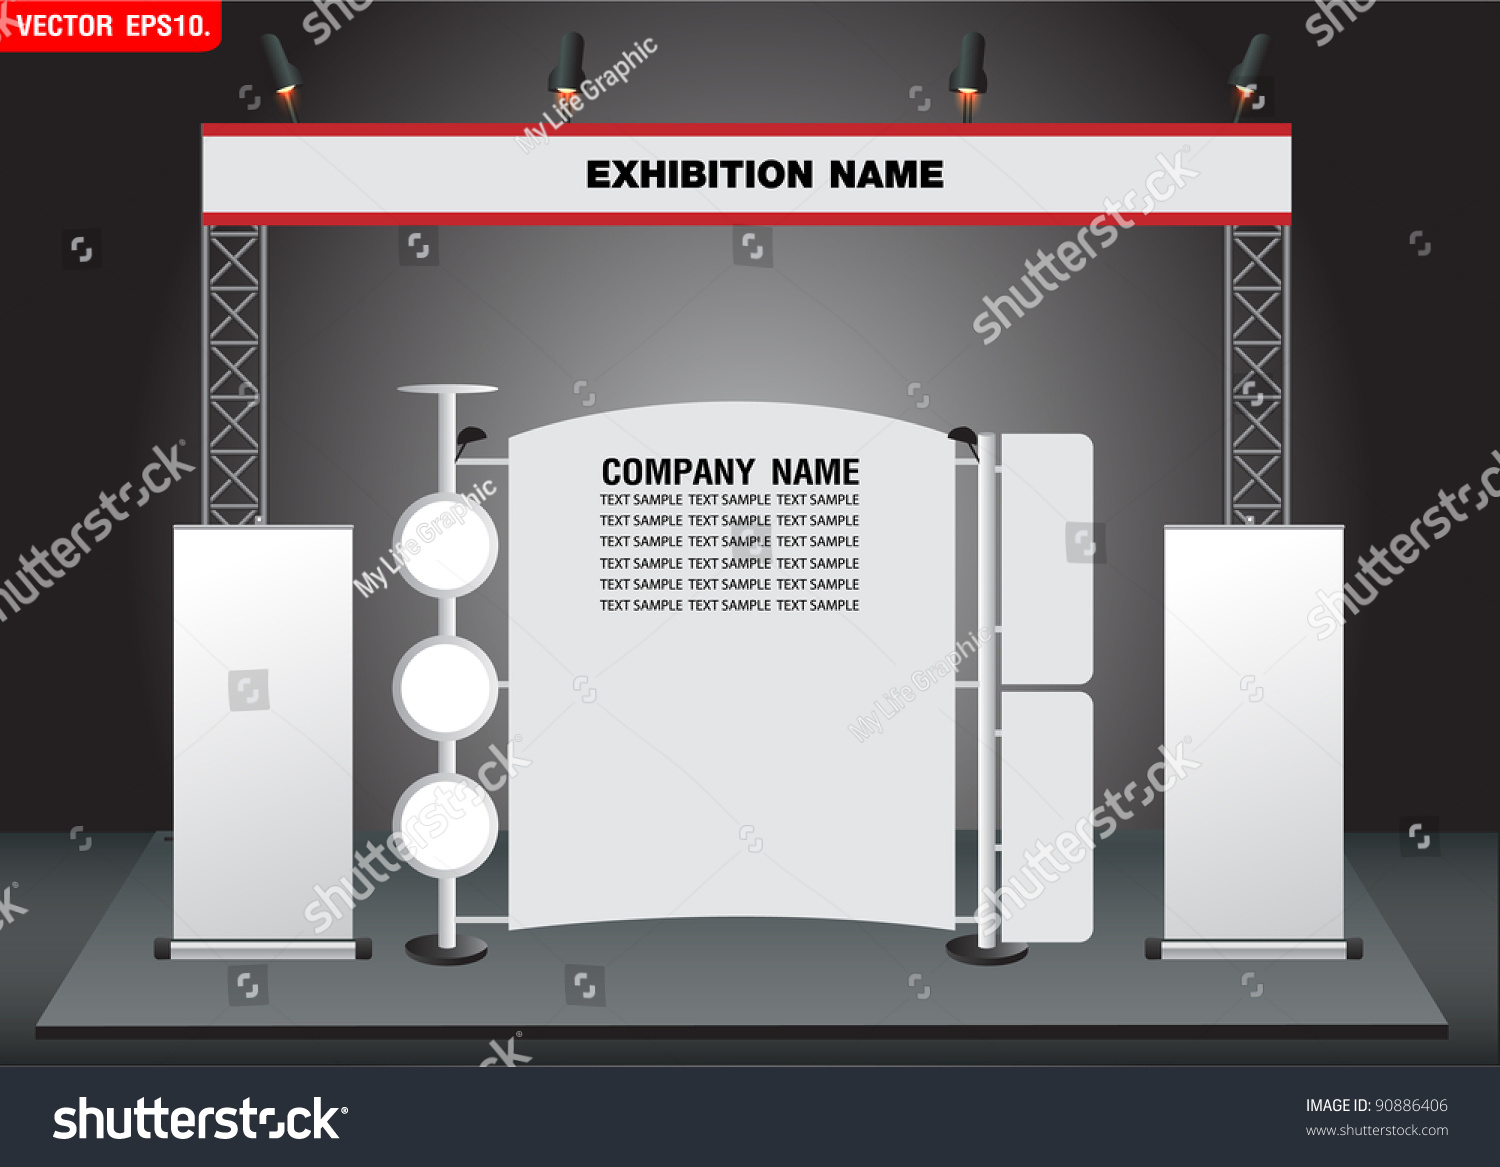 Simple Exhibition Stand Vector : Blank trade exhibition stand and roll up banner vector